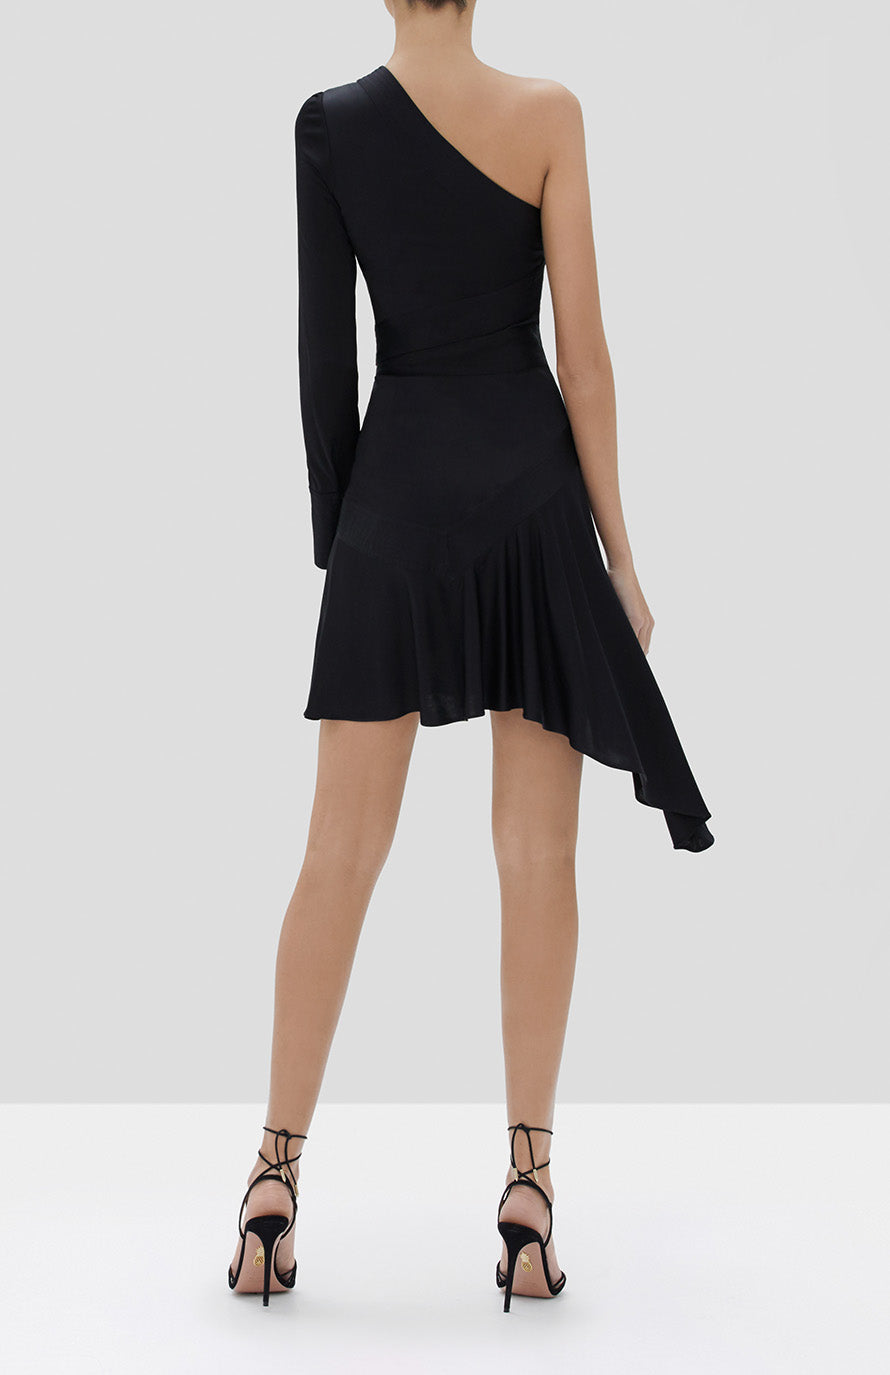 Alexis Gaja Dress in Black - Rear View